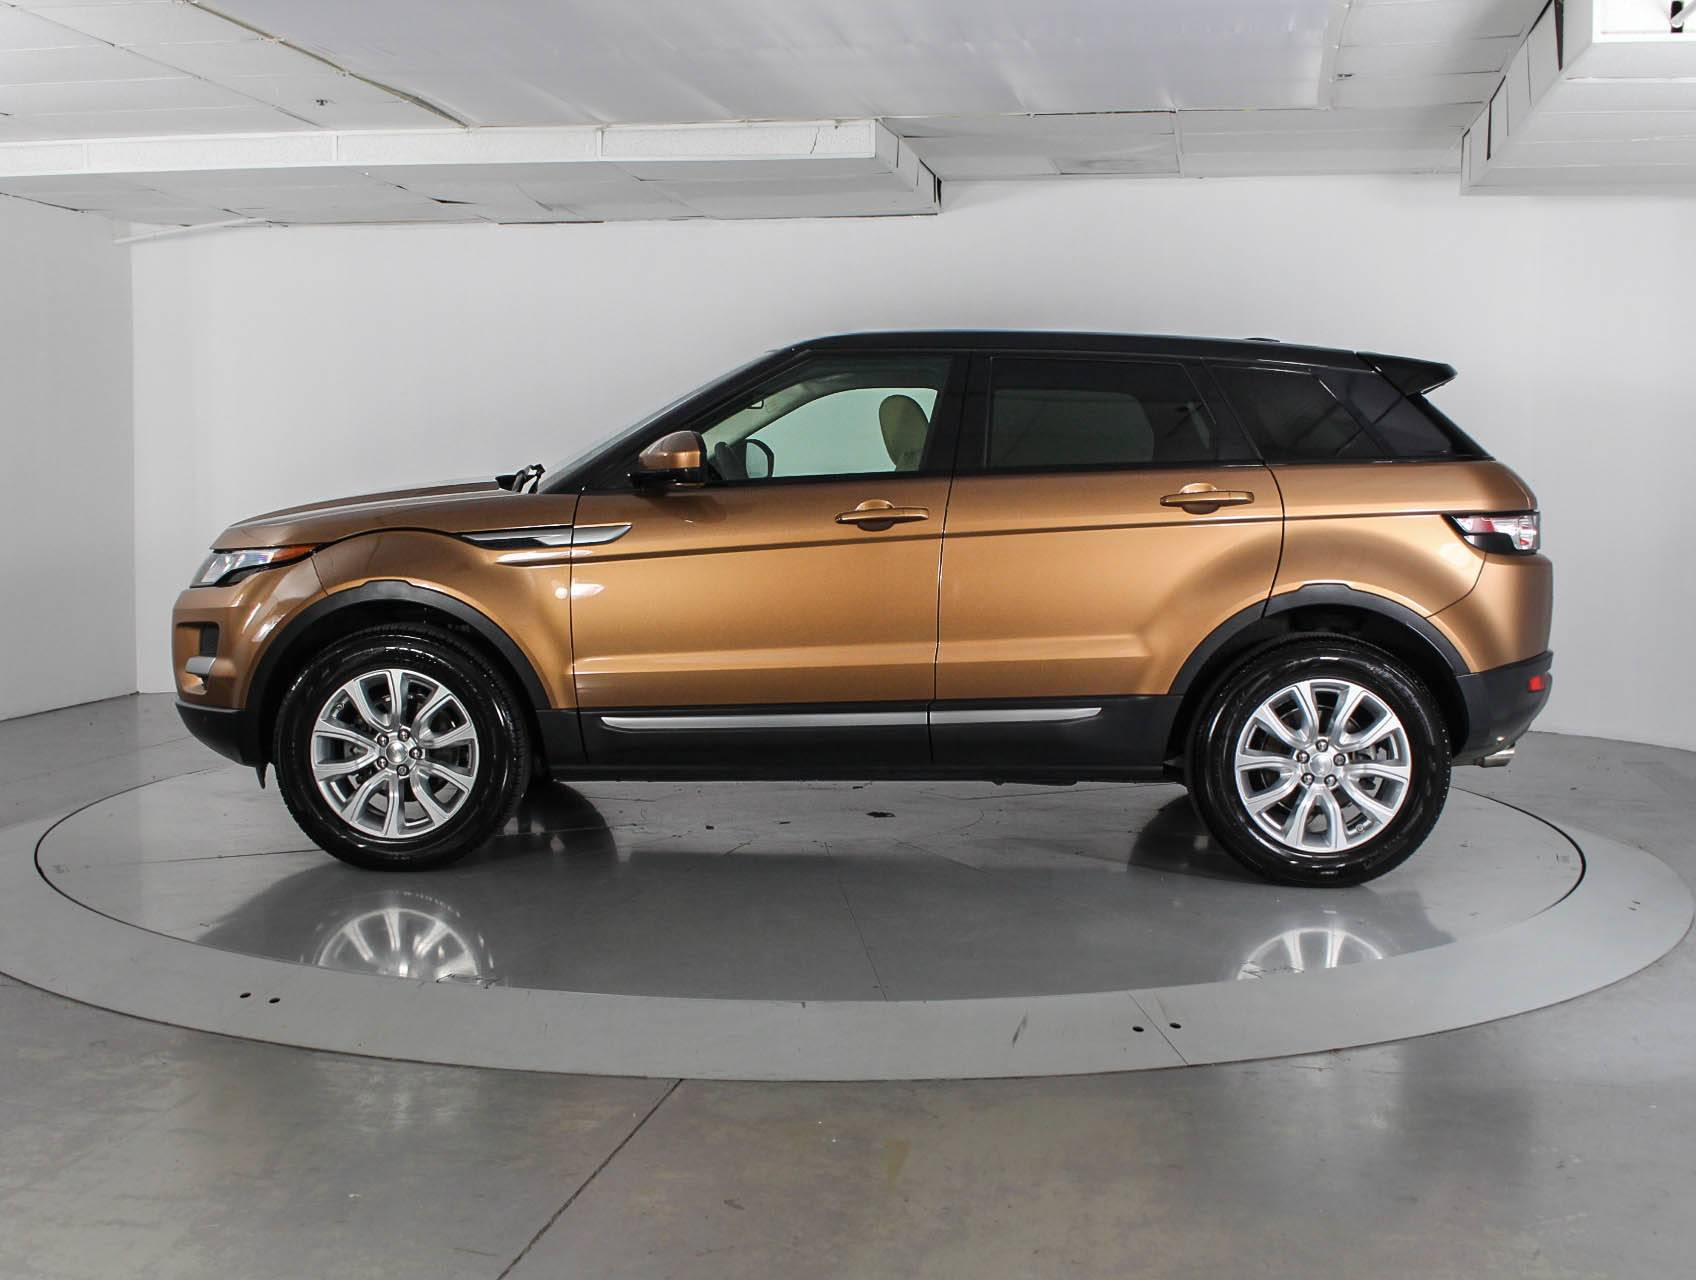 Used 2014 LAND ROVER RANGE ROVER EVOQUE PURE SUV for sale in WEST